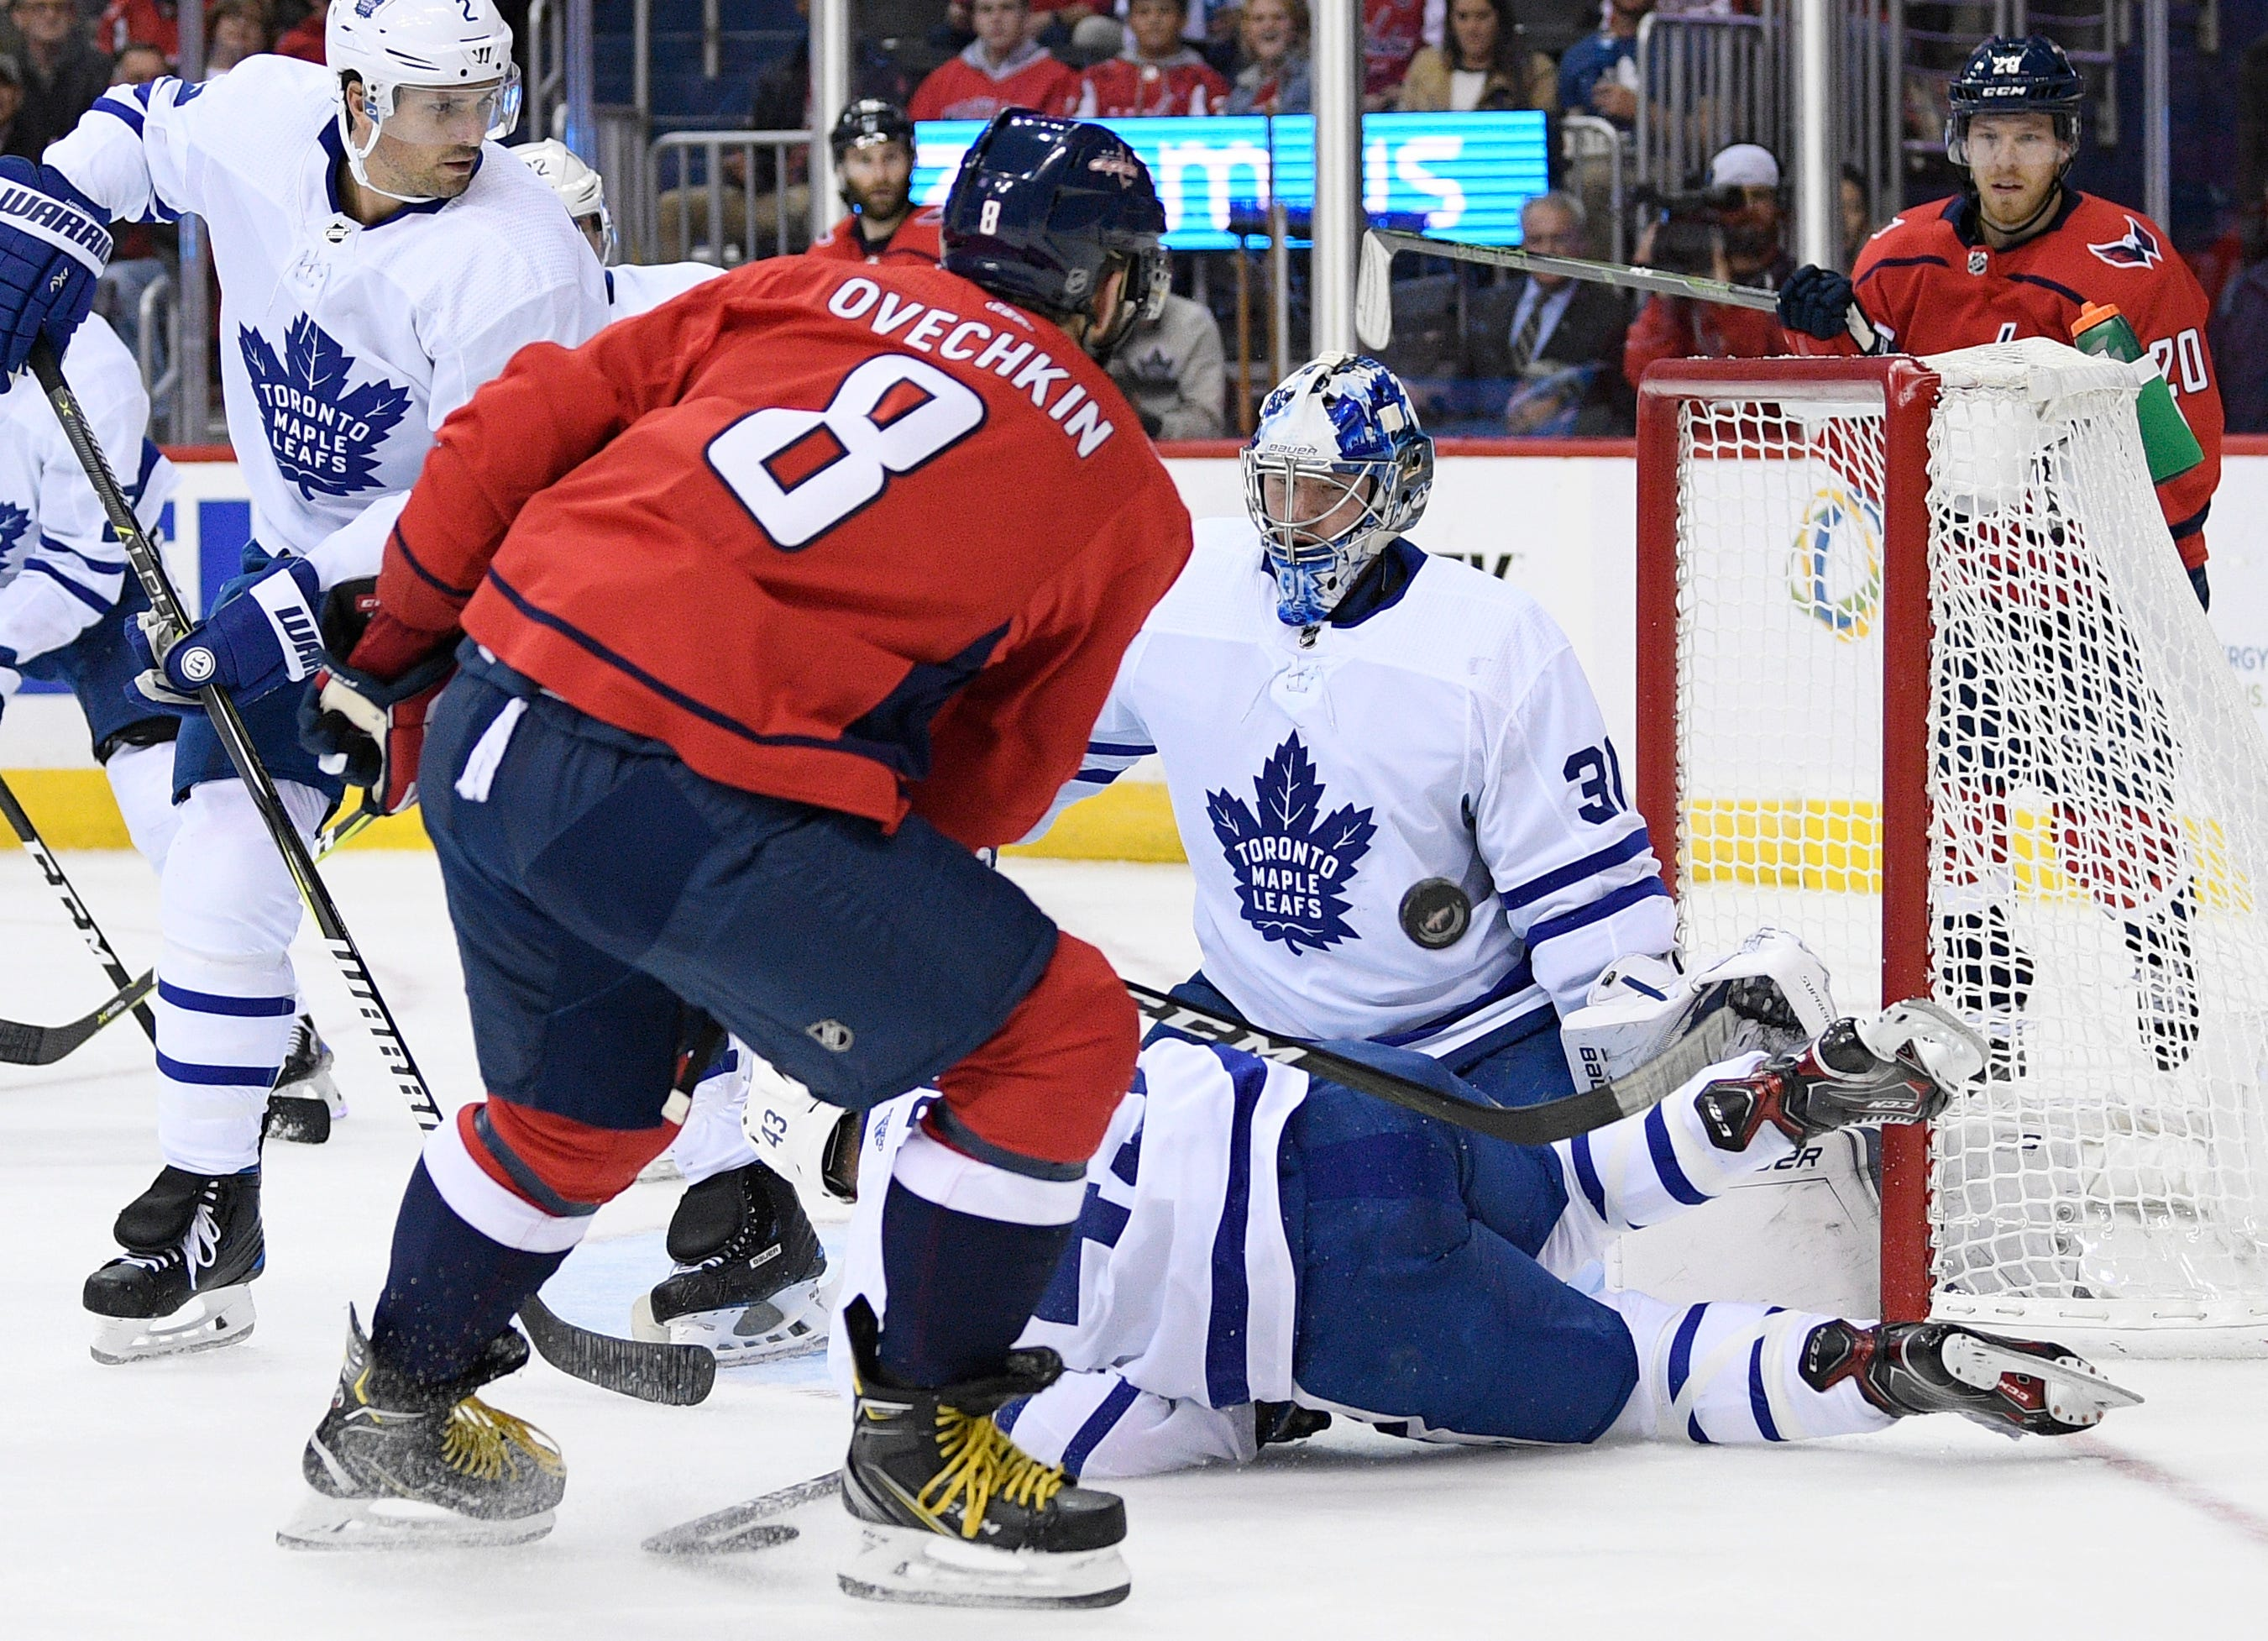 Matthews extends goal streak, Maple Leafs beat Capitals 4-2